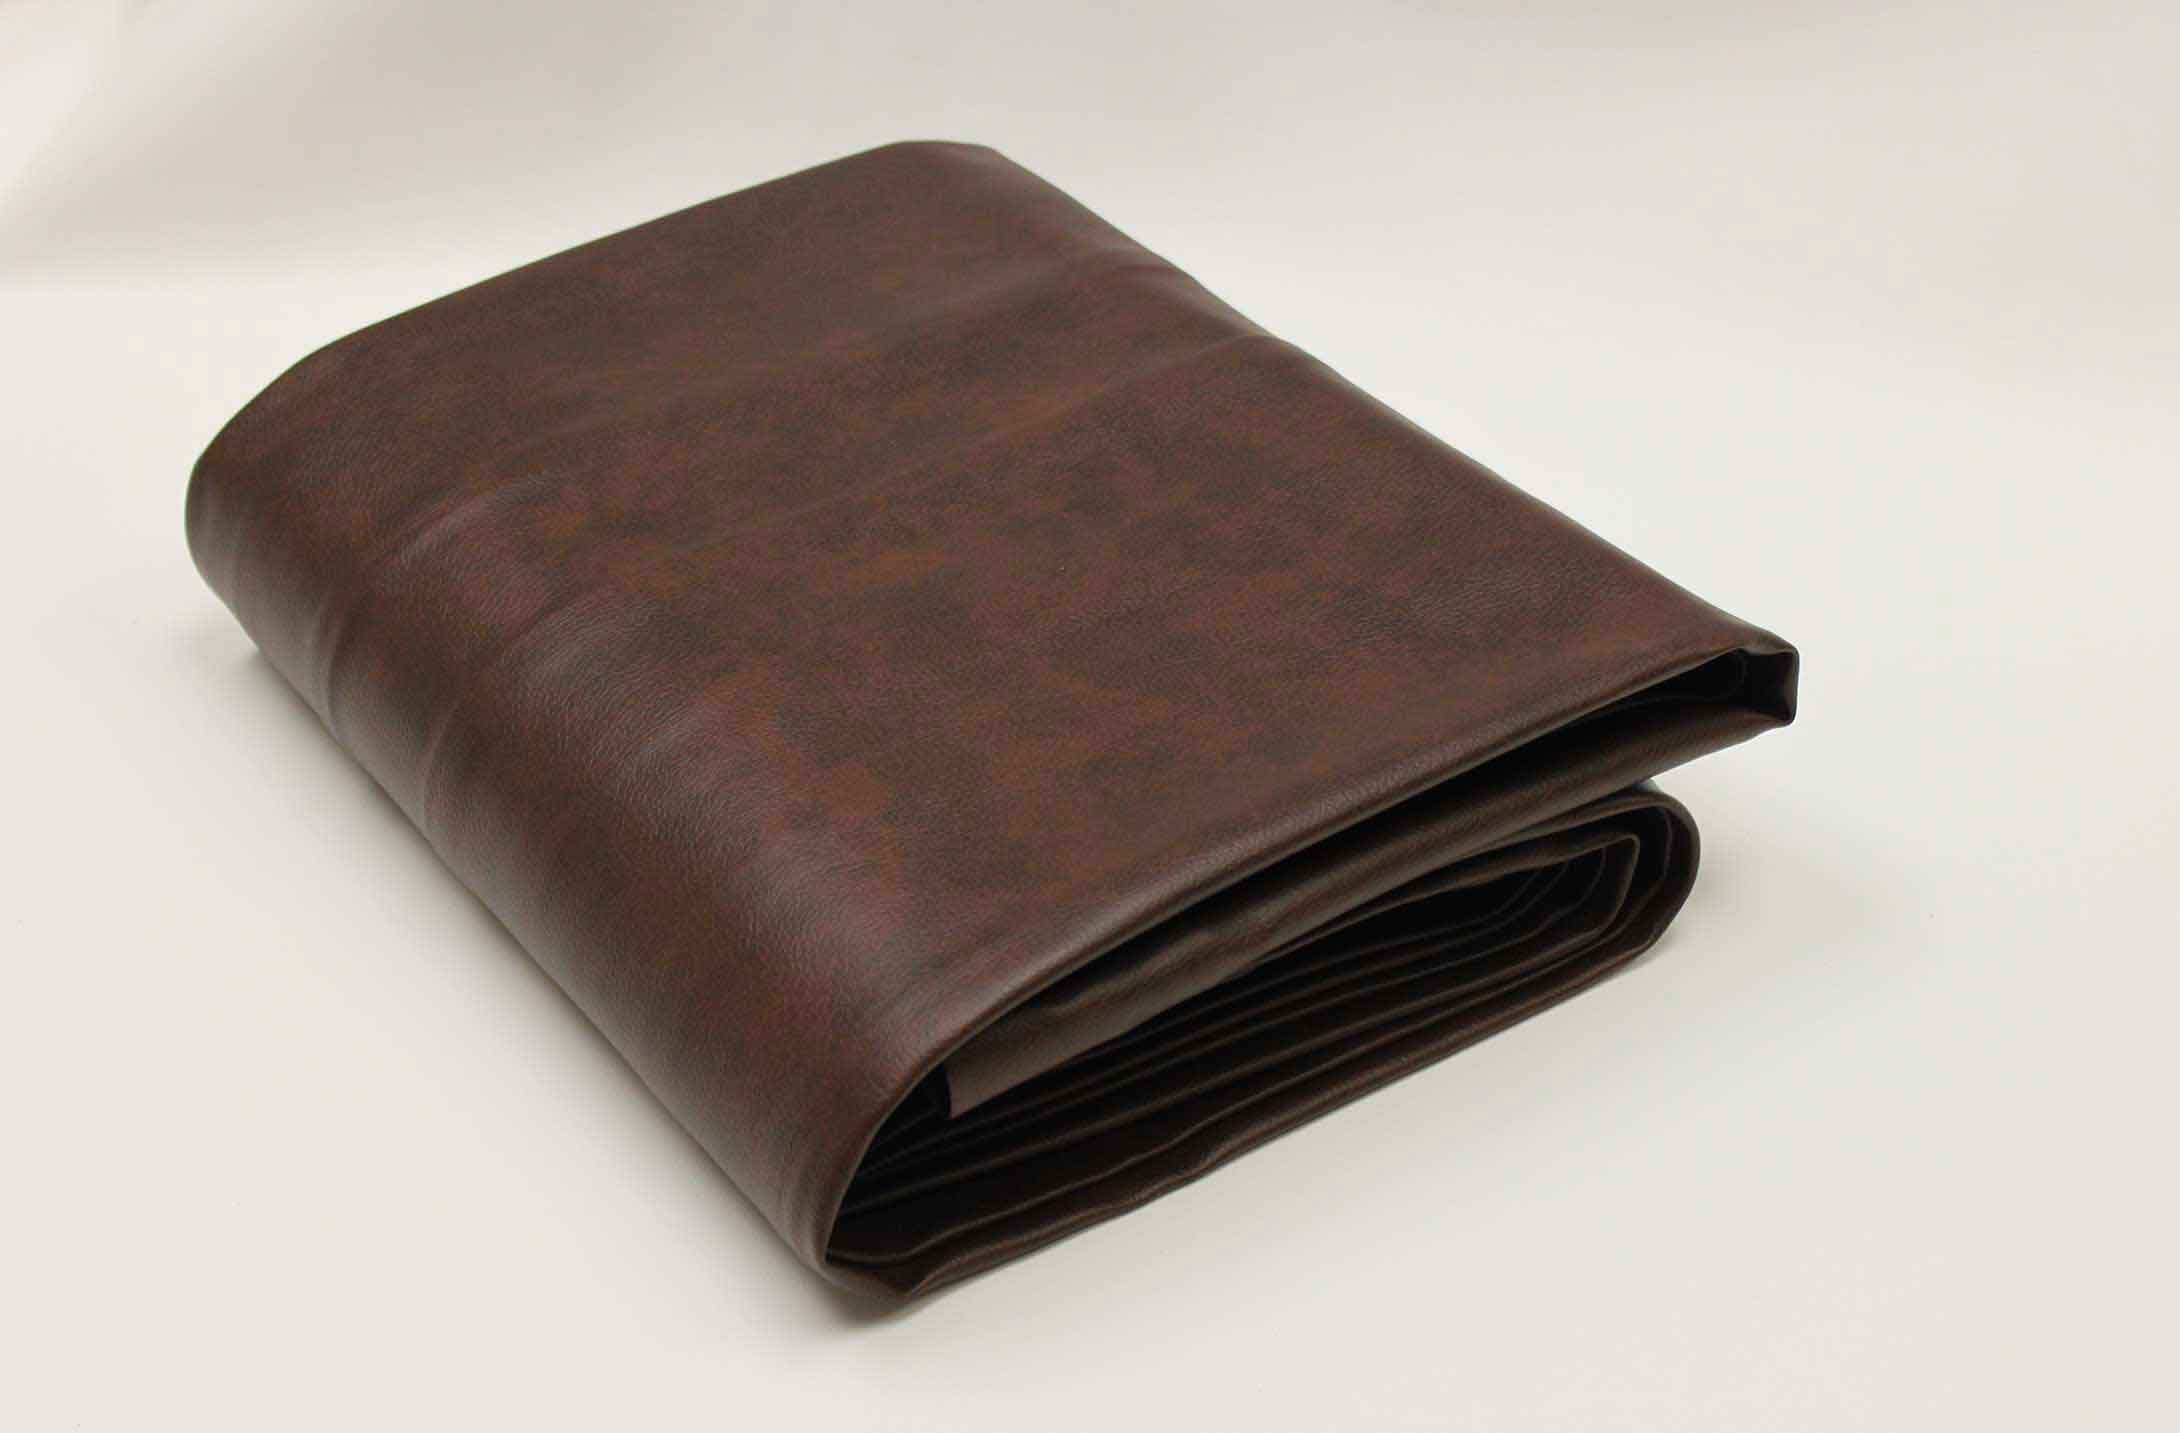 Brown, leather-like vinyl custom outdoor pool table cover from R&R Outdoors All Weather Billiards